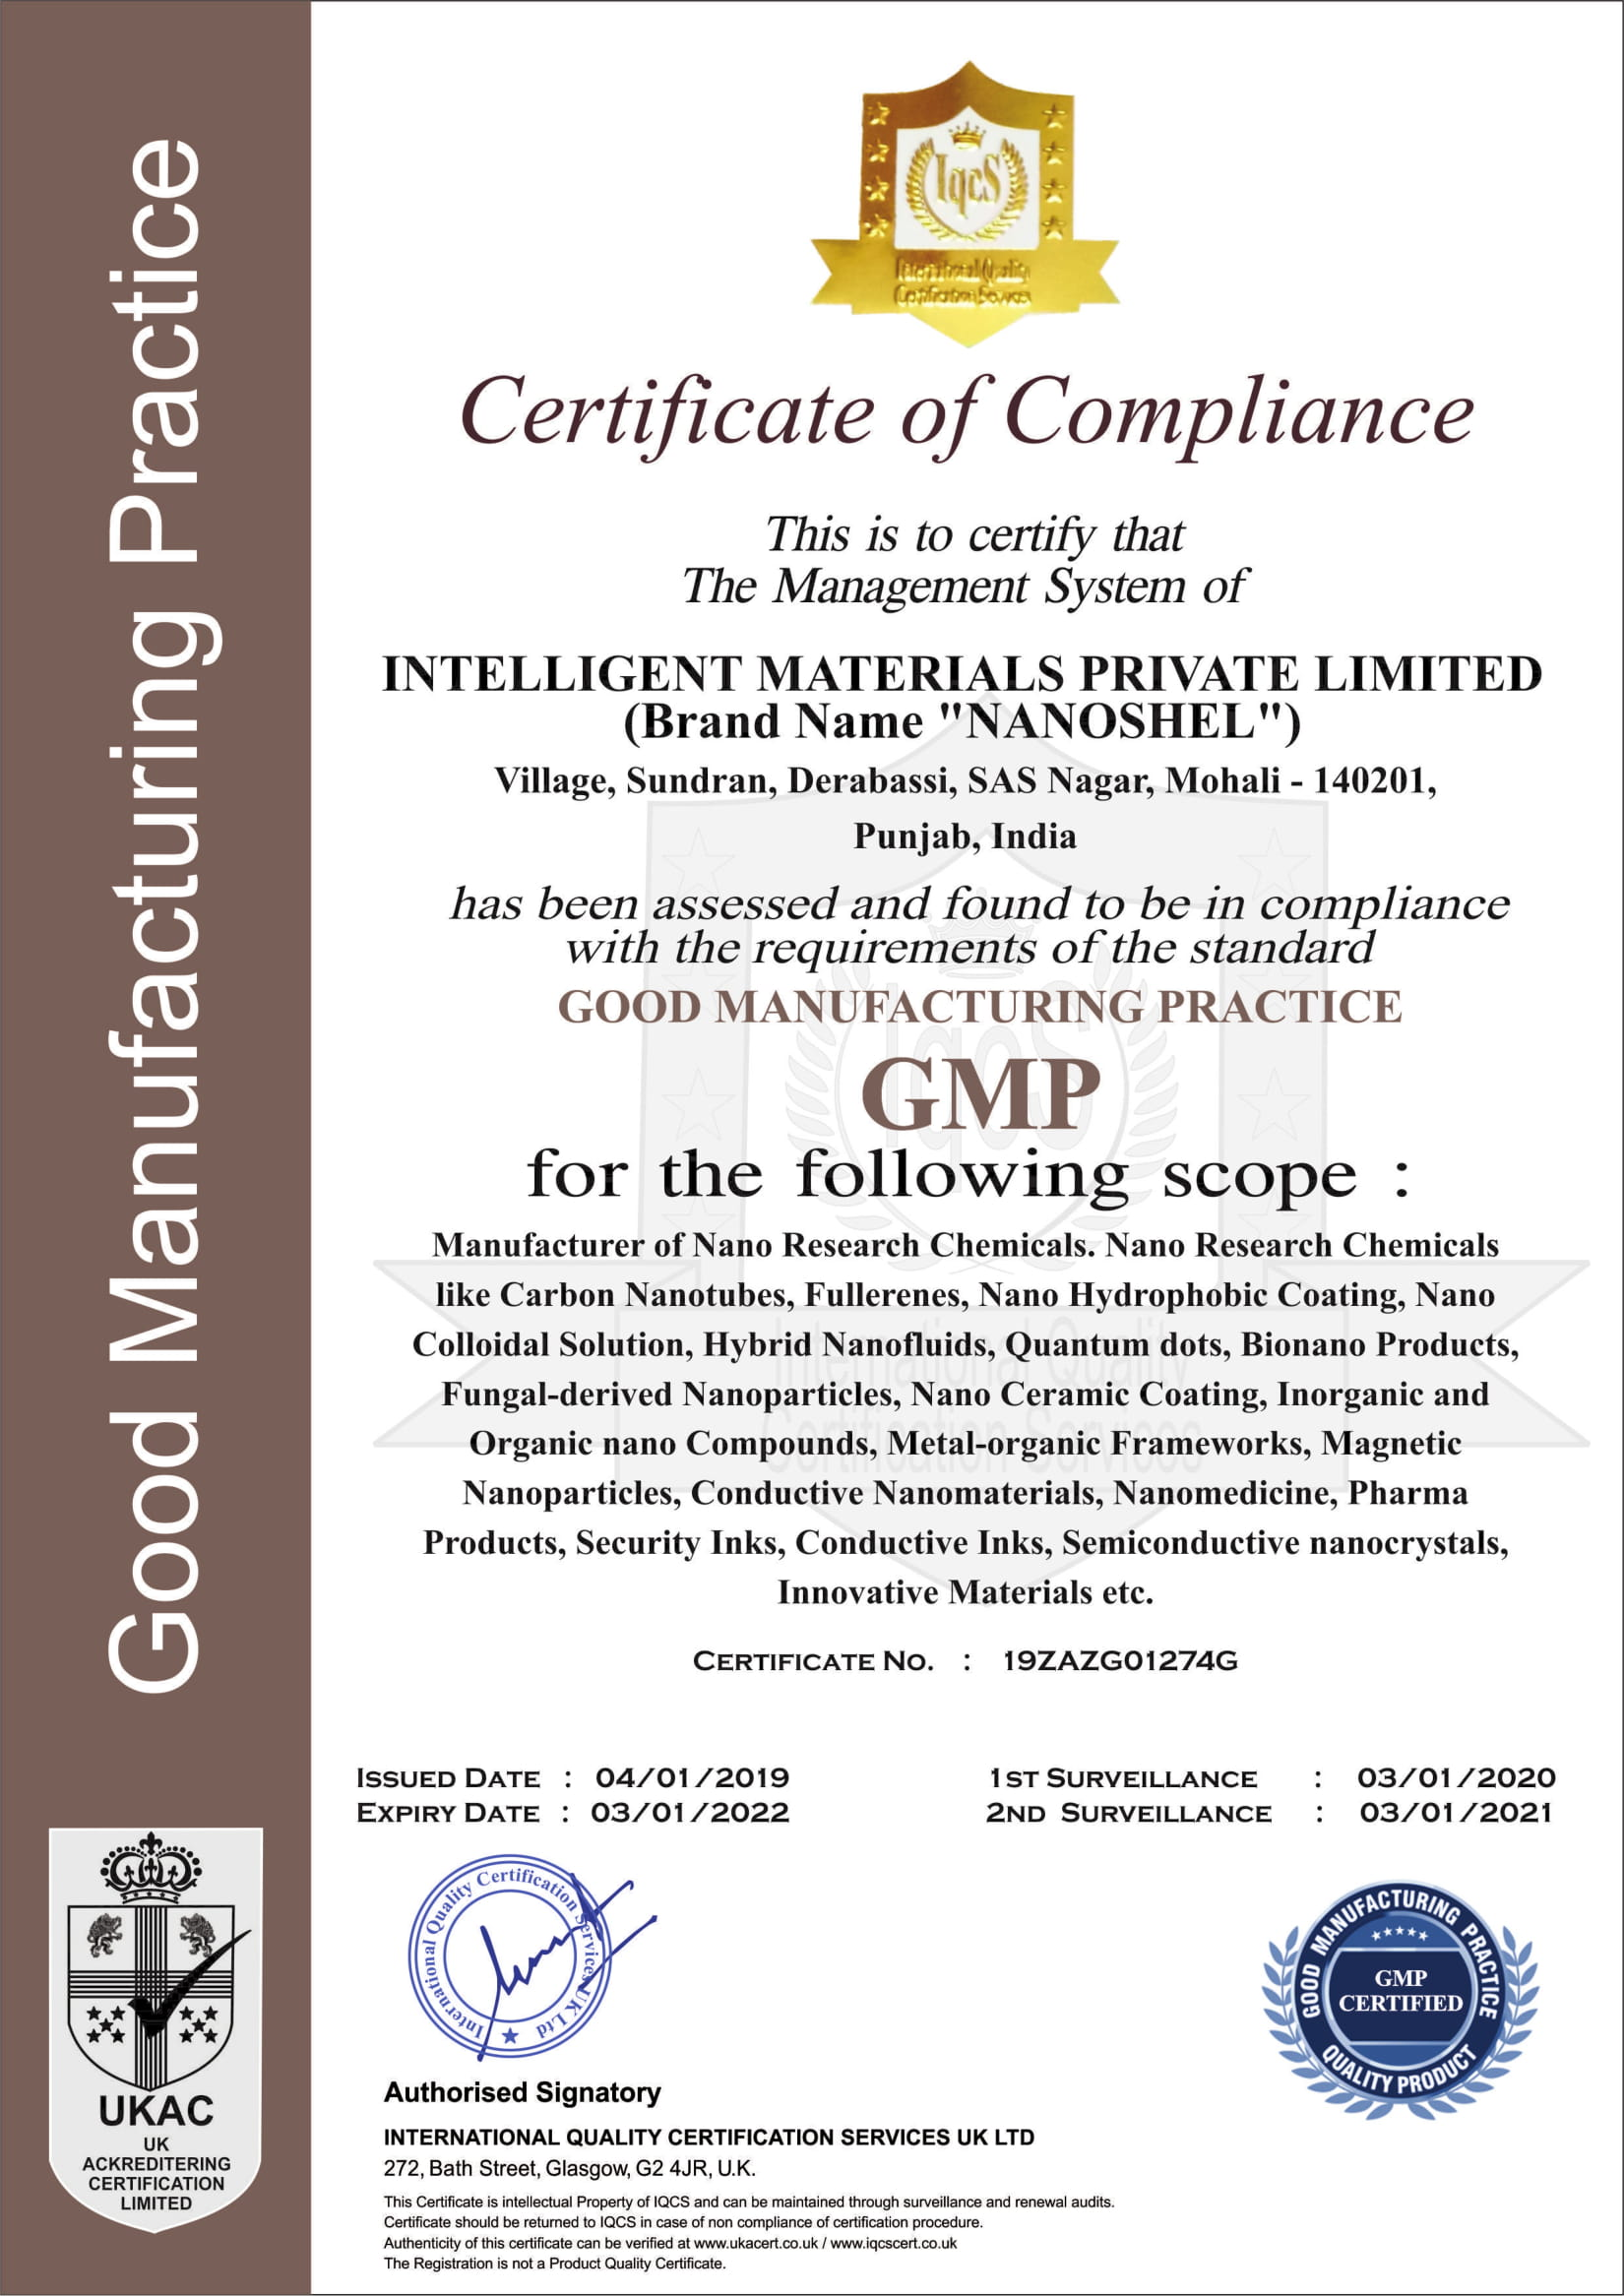 INTELLIGENT MATERIALS PRIVATE LIMITED